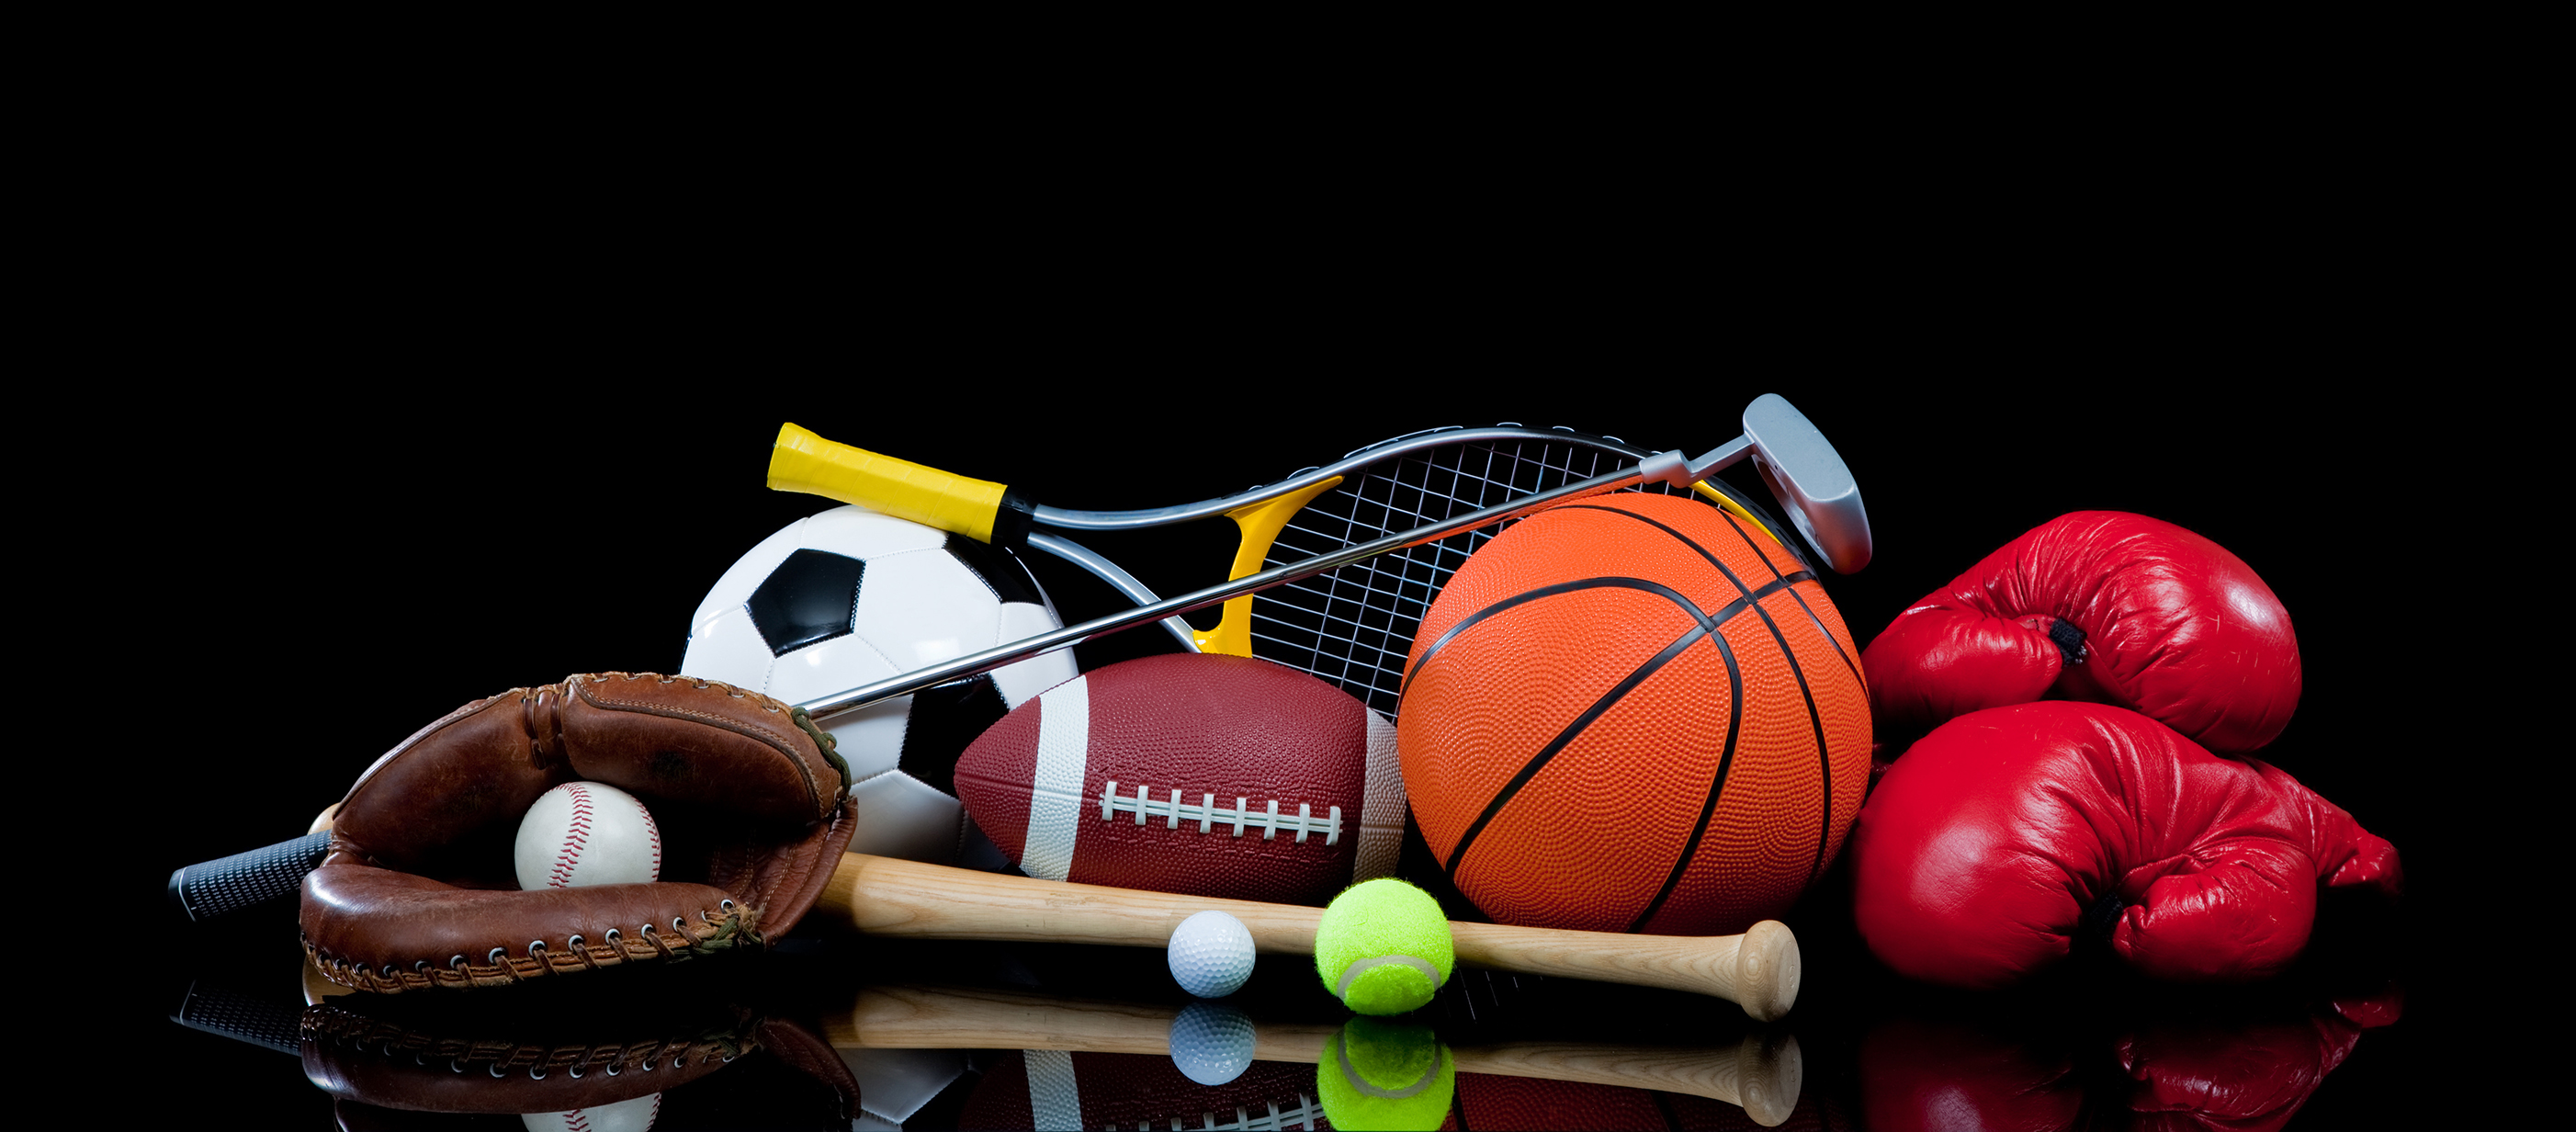 A group of sports equipment on black background including tennis, basketball, baseball, american fotball and soccer and boxing equipment